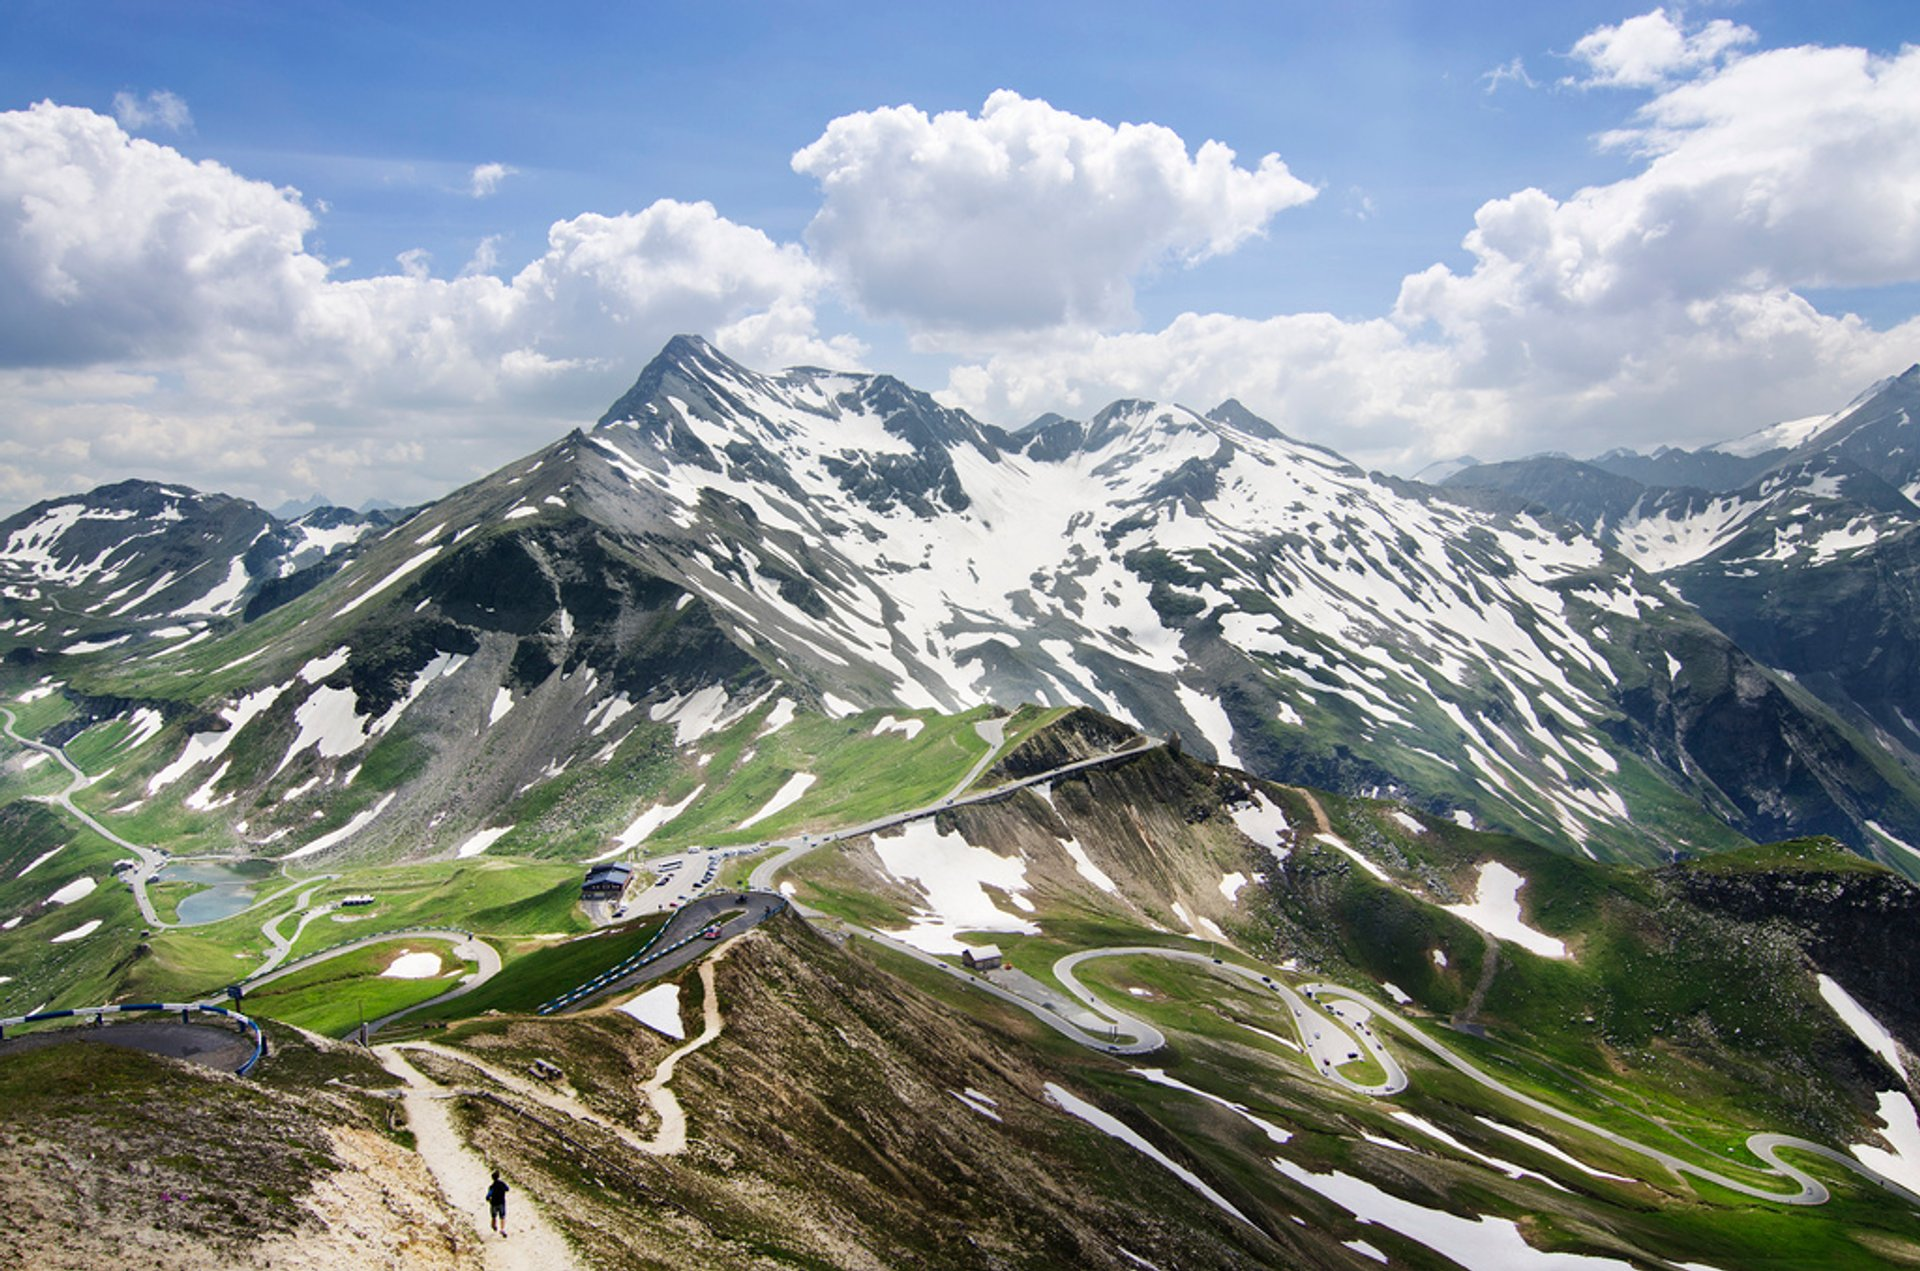 Grossglockner High Alpine Road in Austria 2019 - Best Time